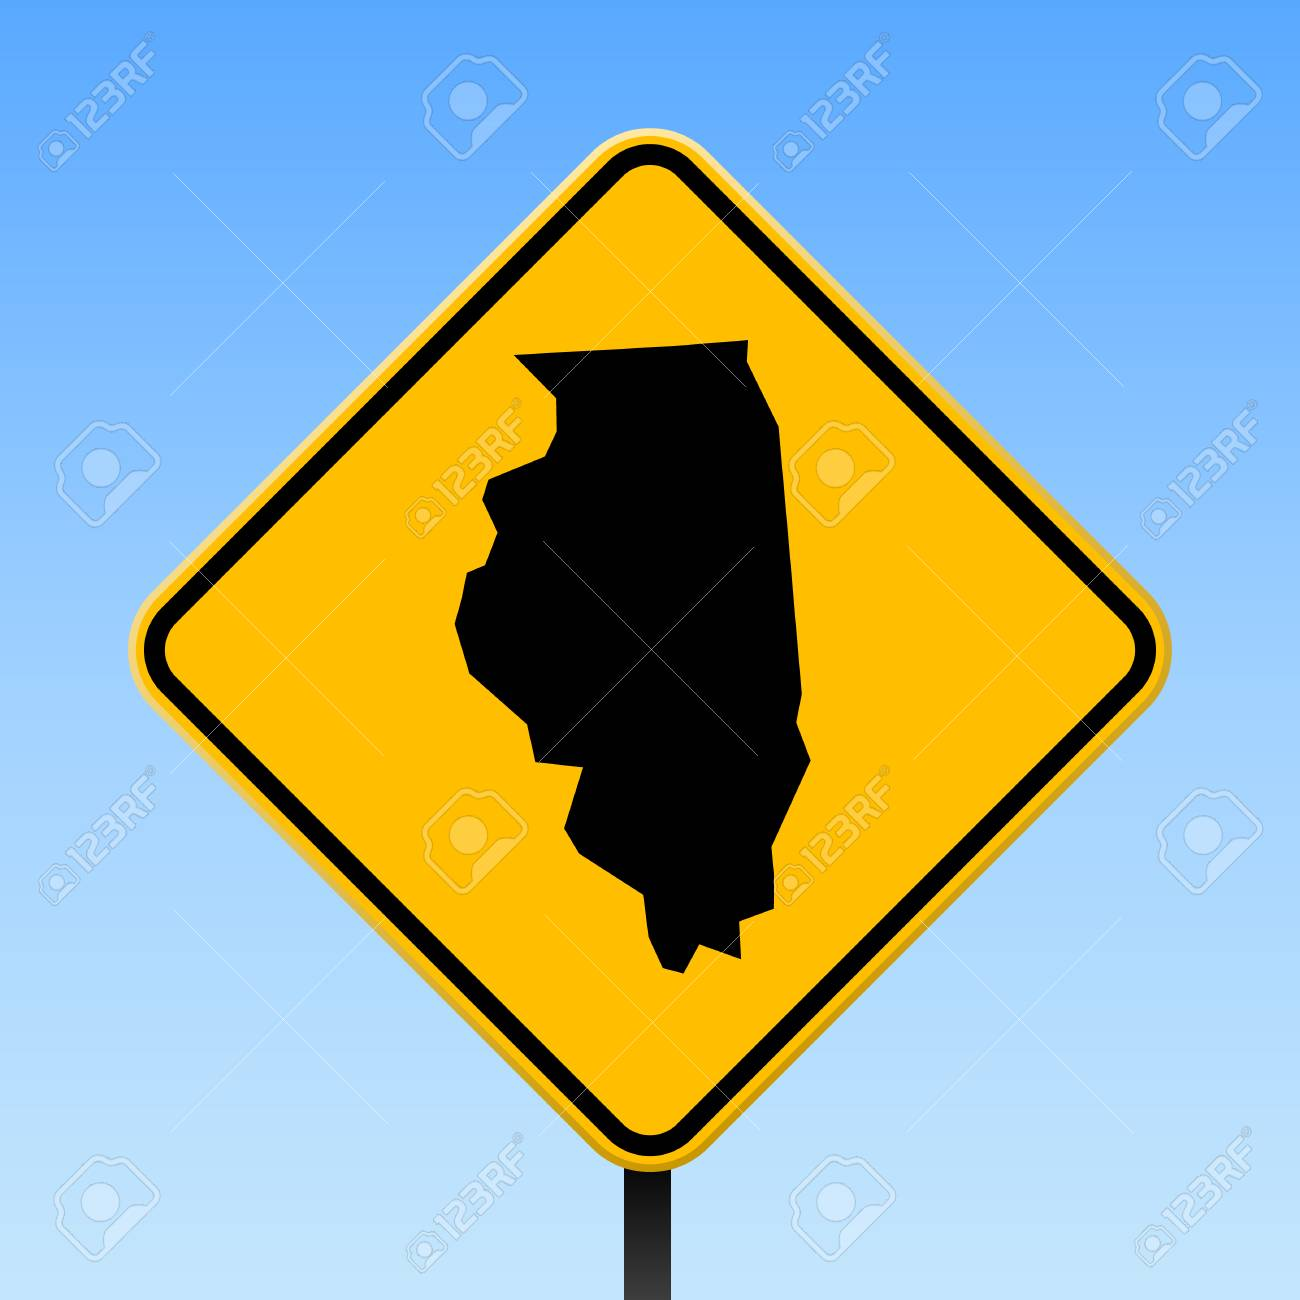 Illinois Map On Road Sign Square Poster With Illinois Us State